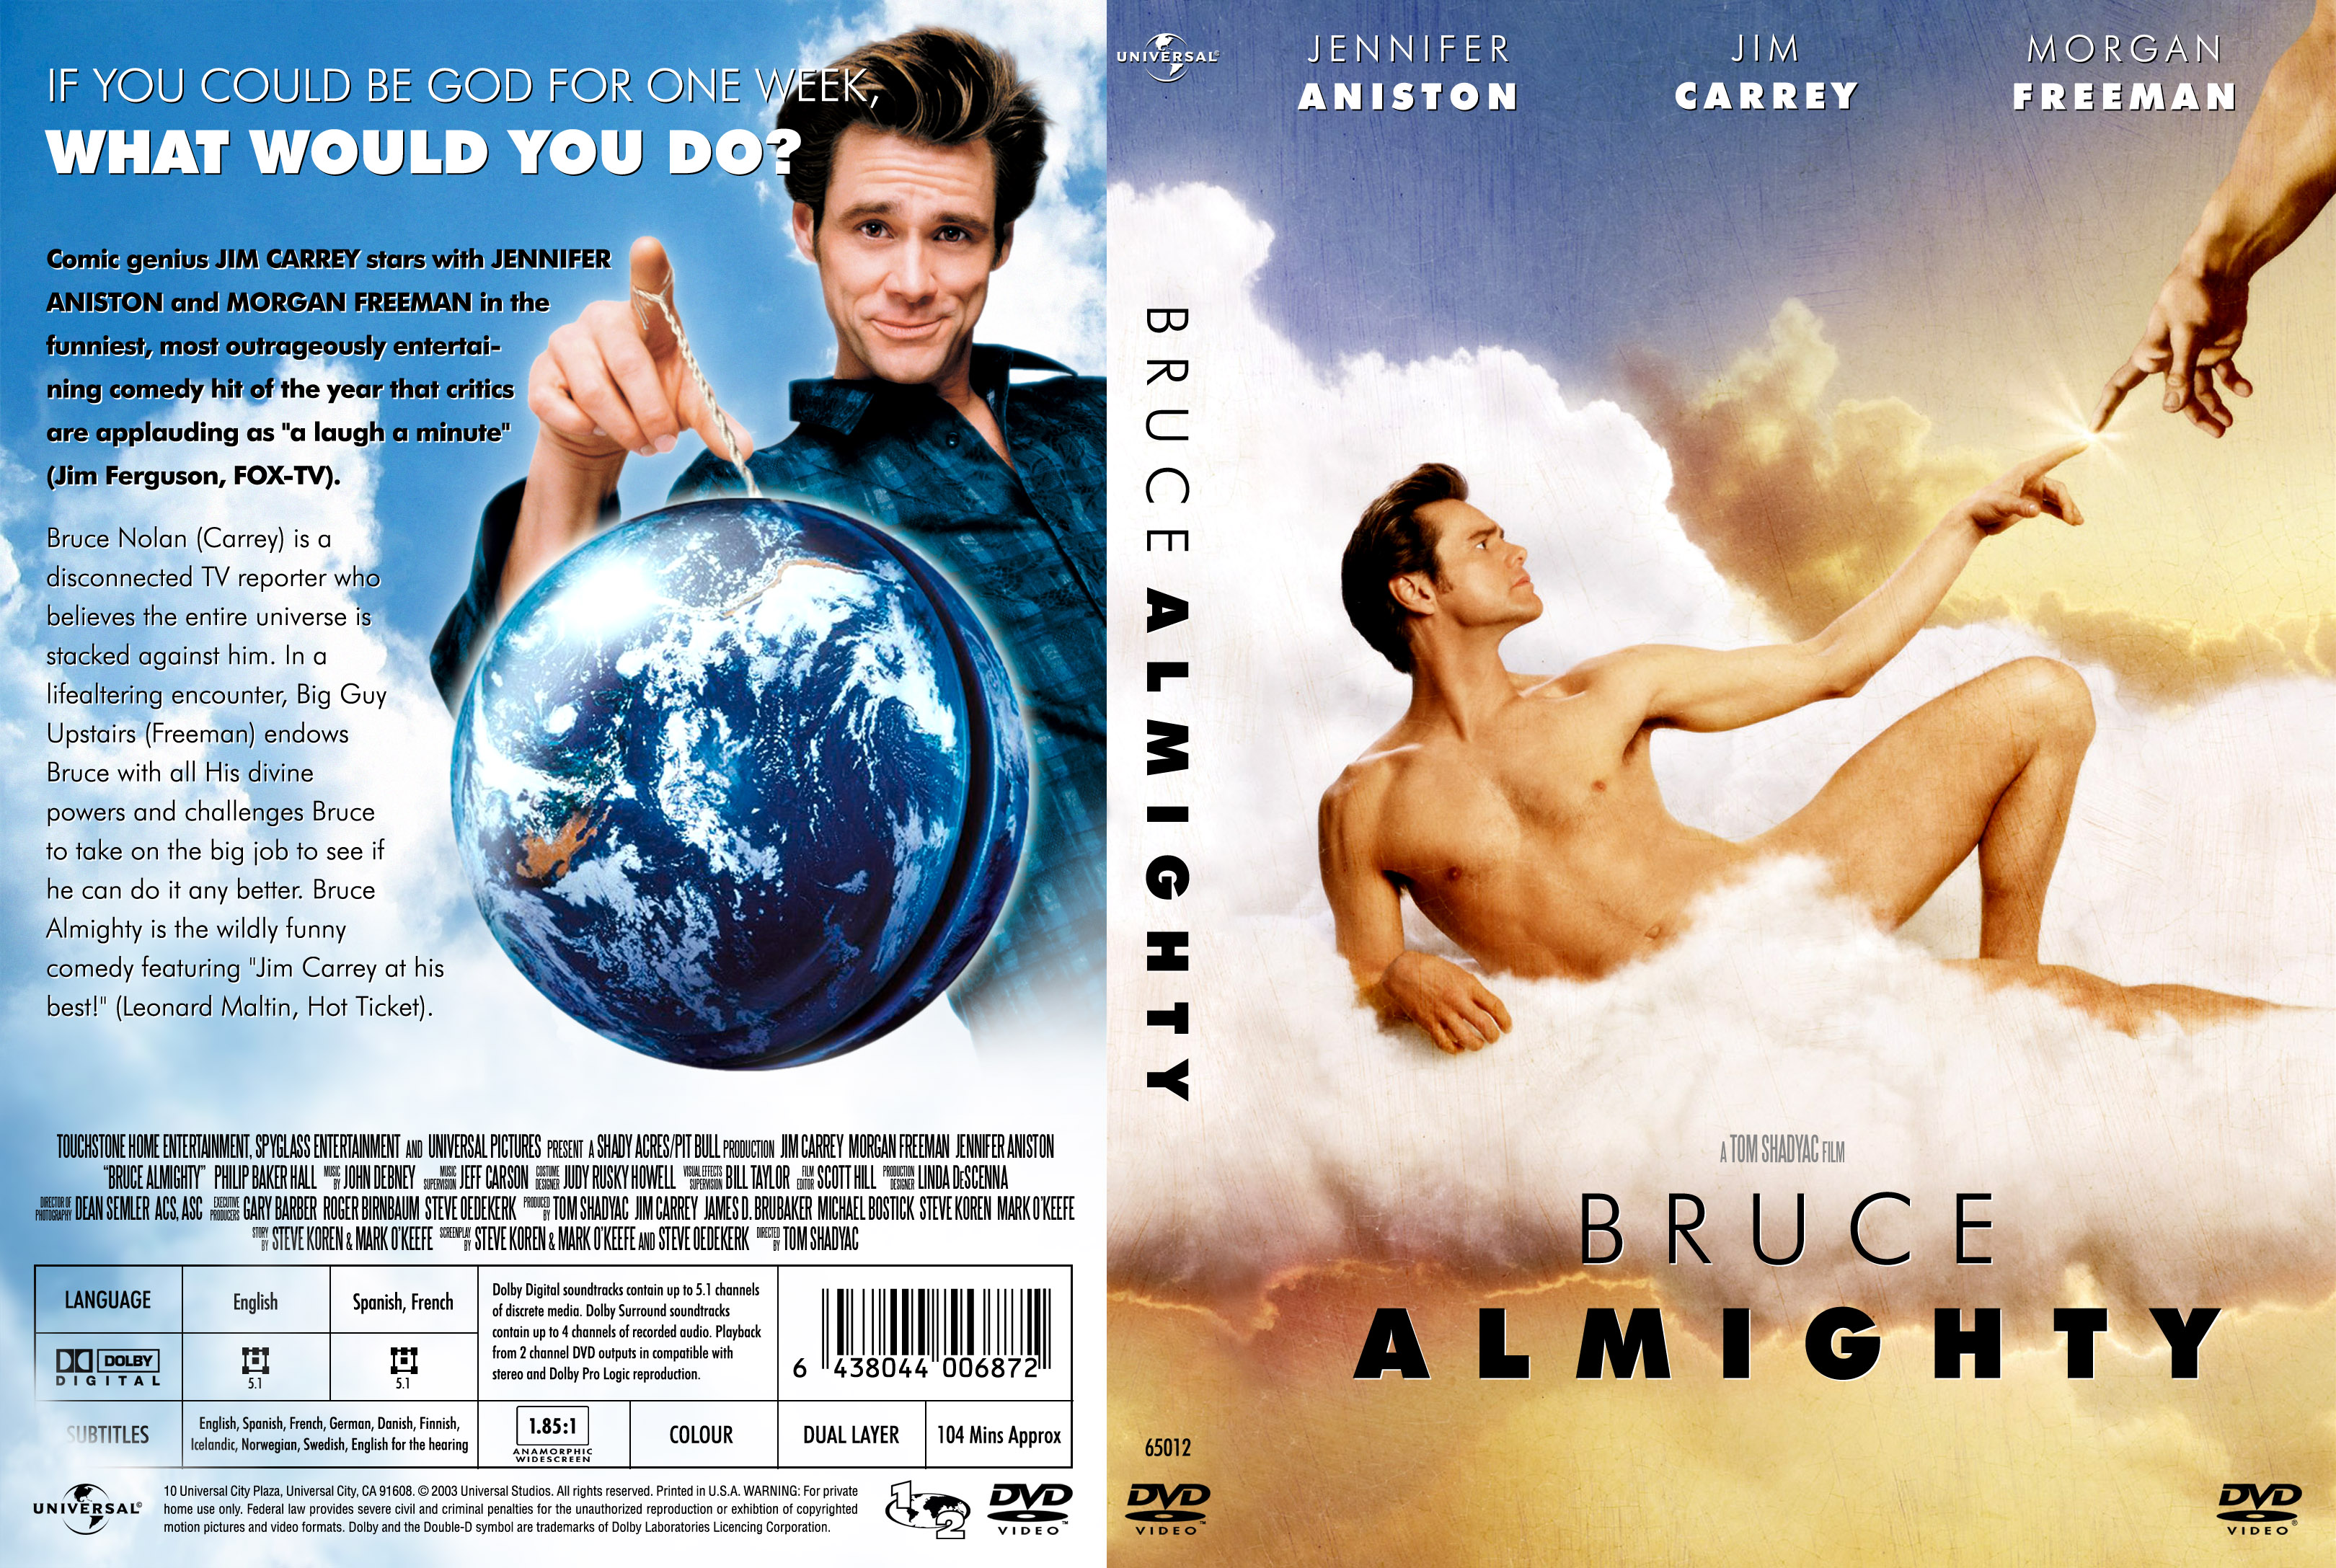 bruce almighty full movie download 720p